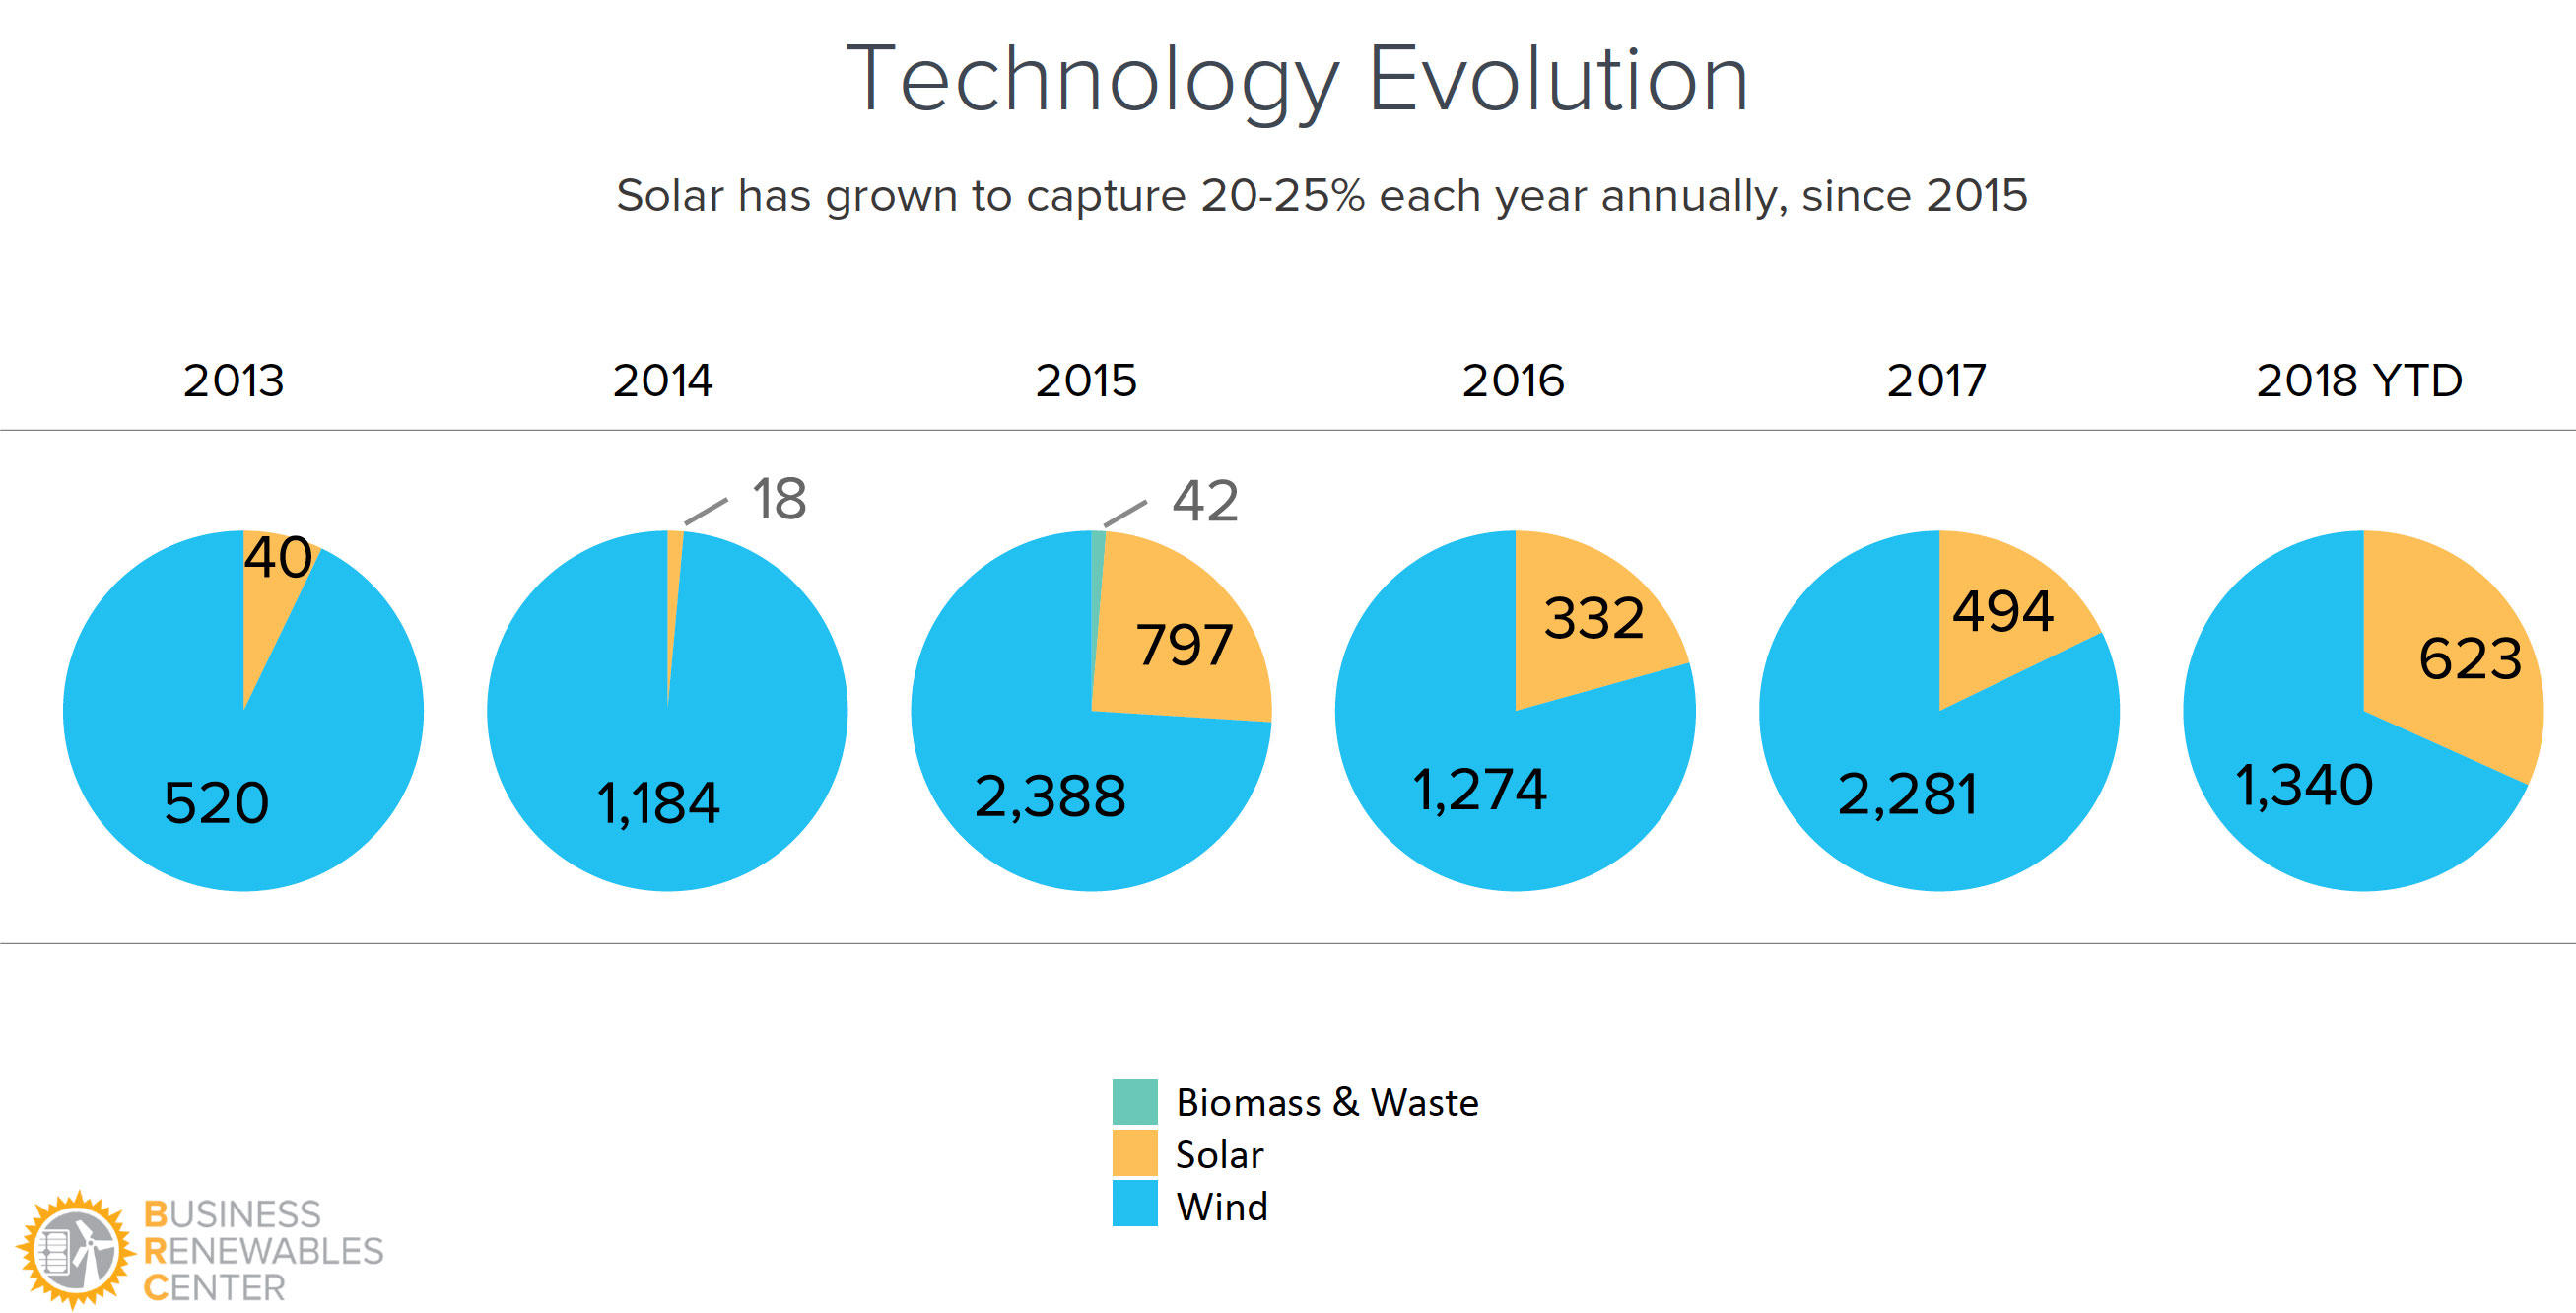 Solar power is becoming a bigger part of businesses' deals for renewable energy, eating into wind power's early lead.